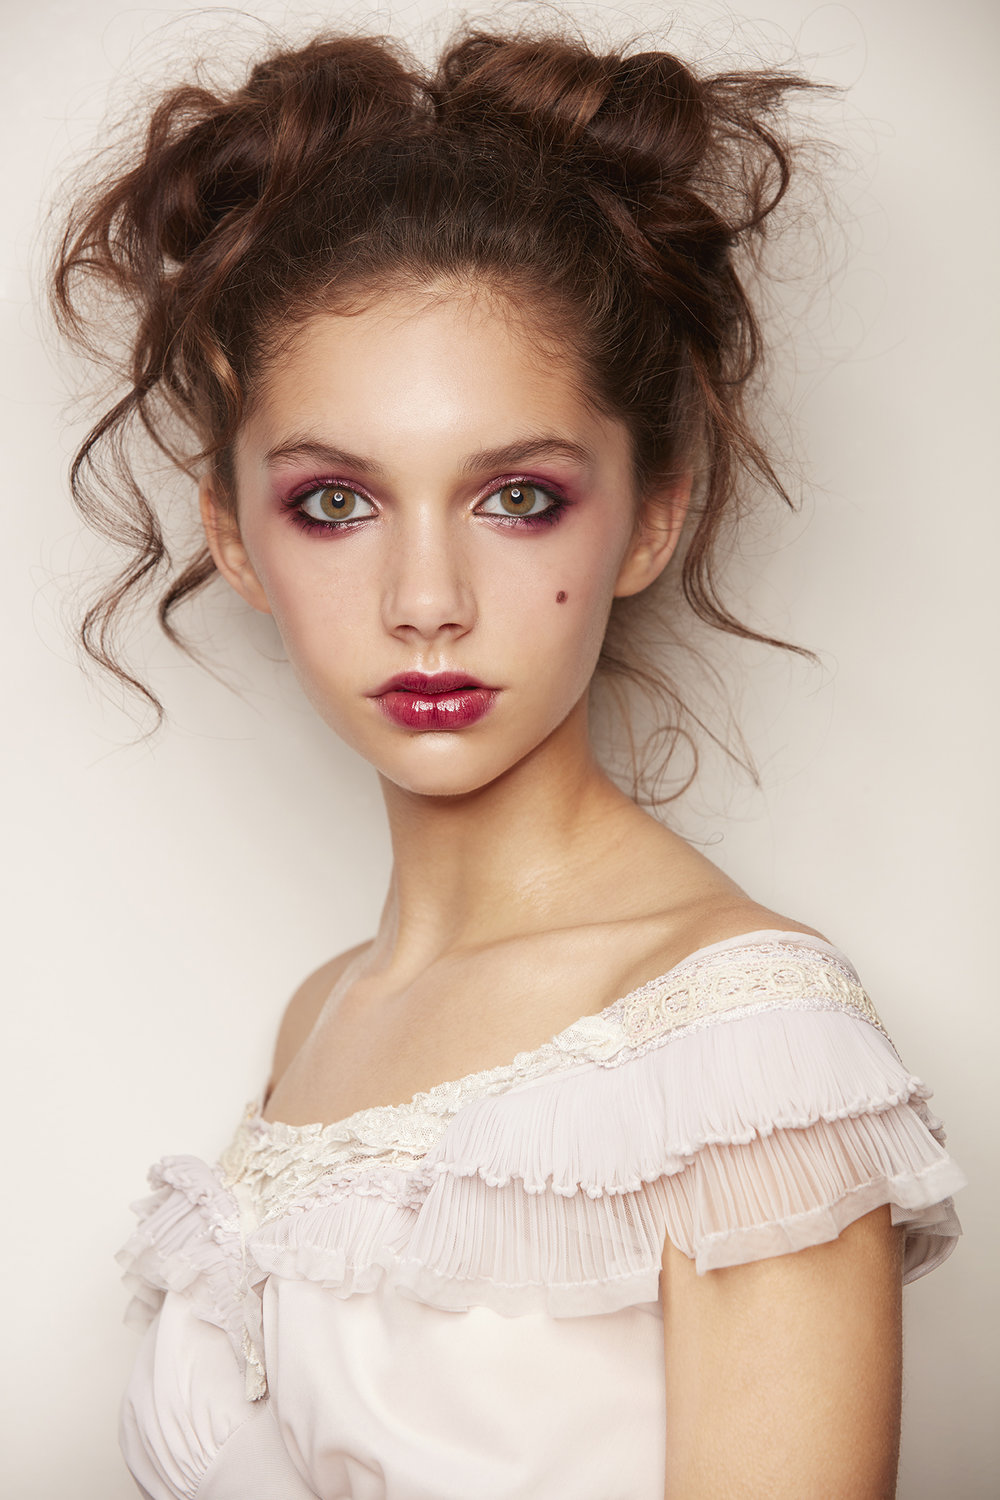 retouched doll-like young woman in lacy dress, hair in buns